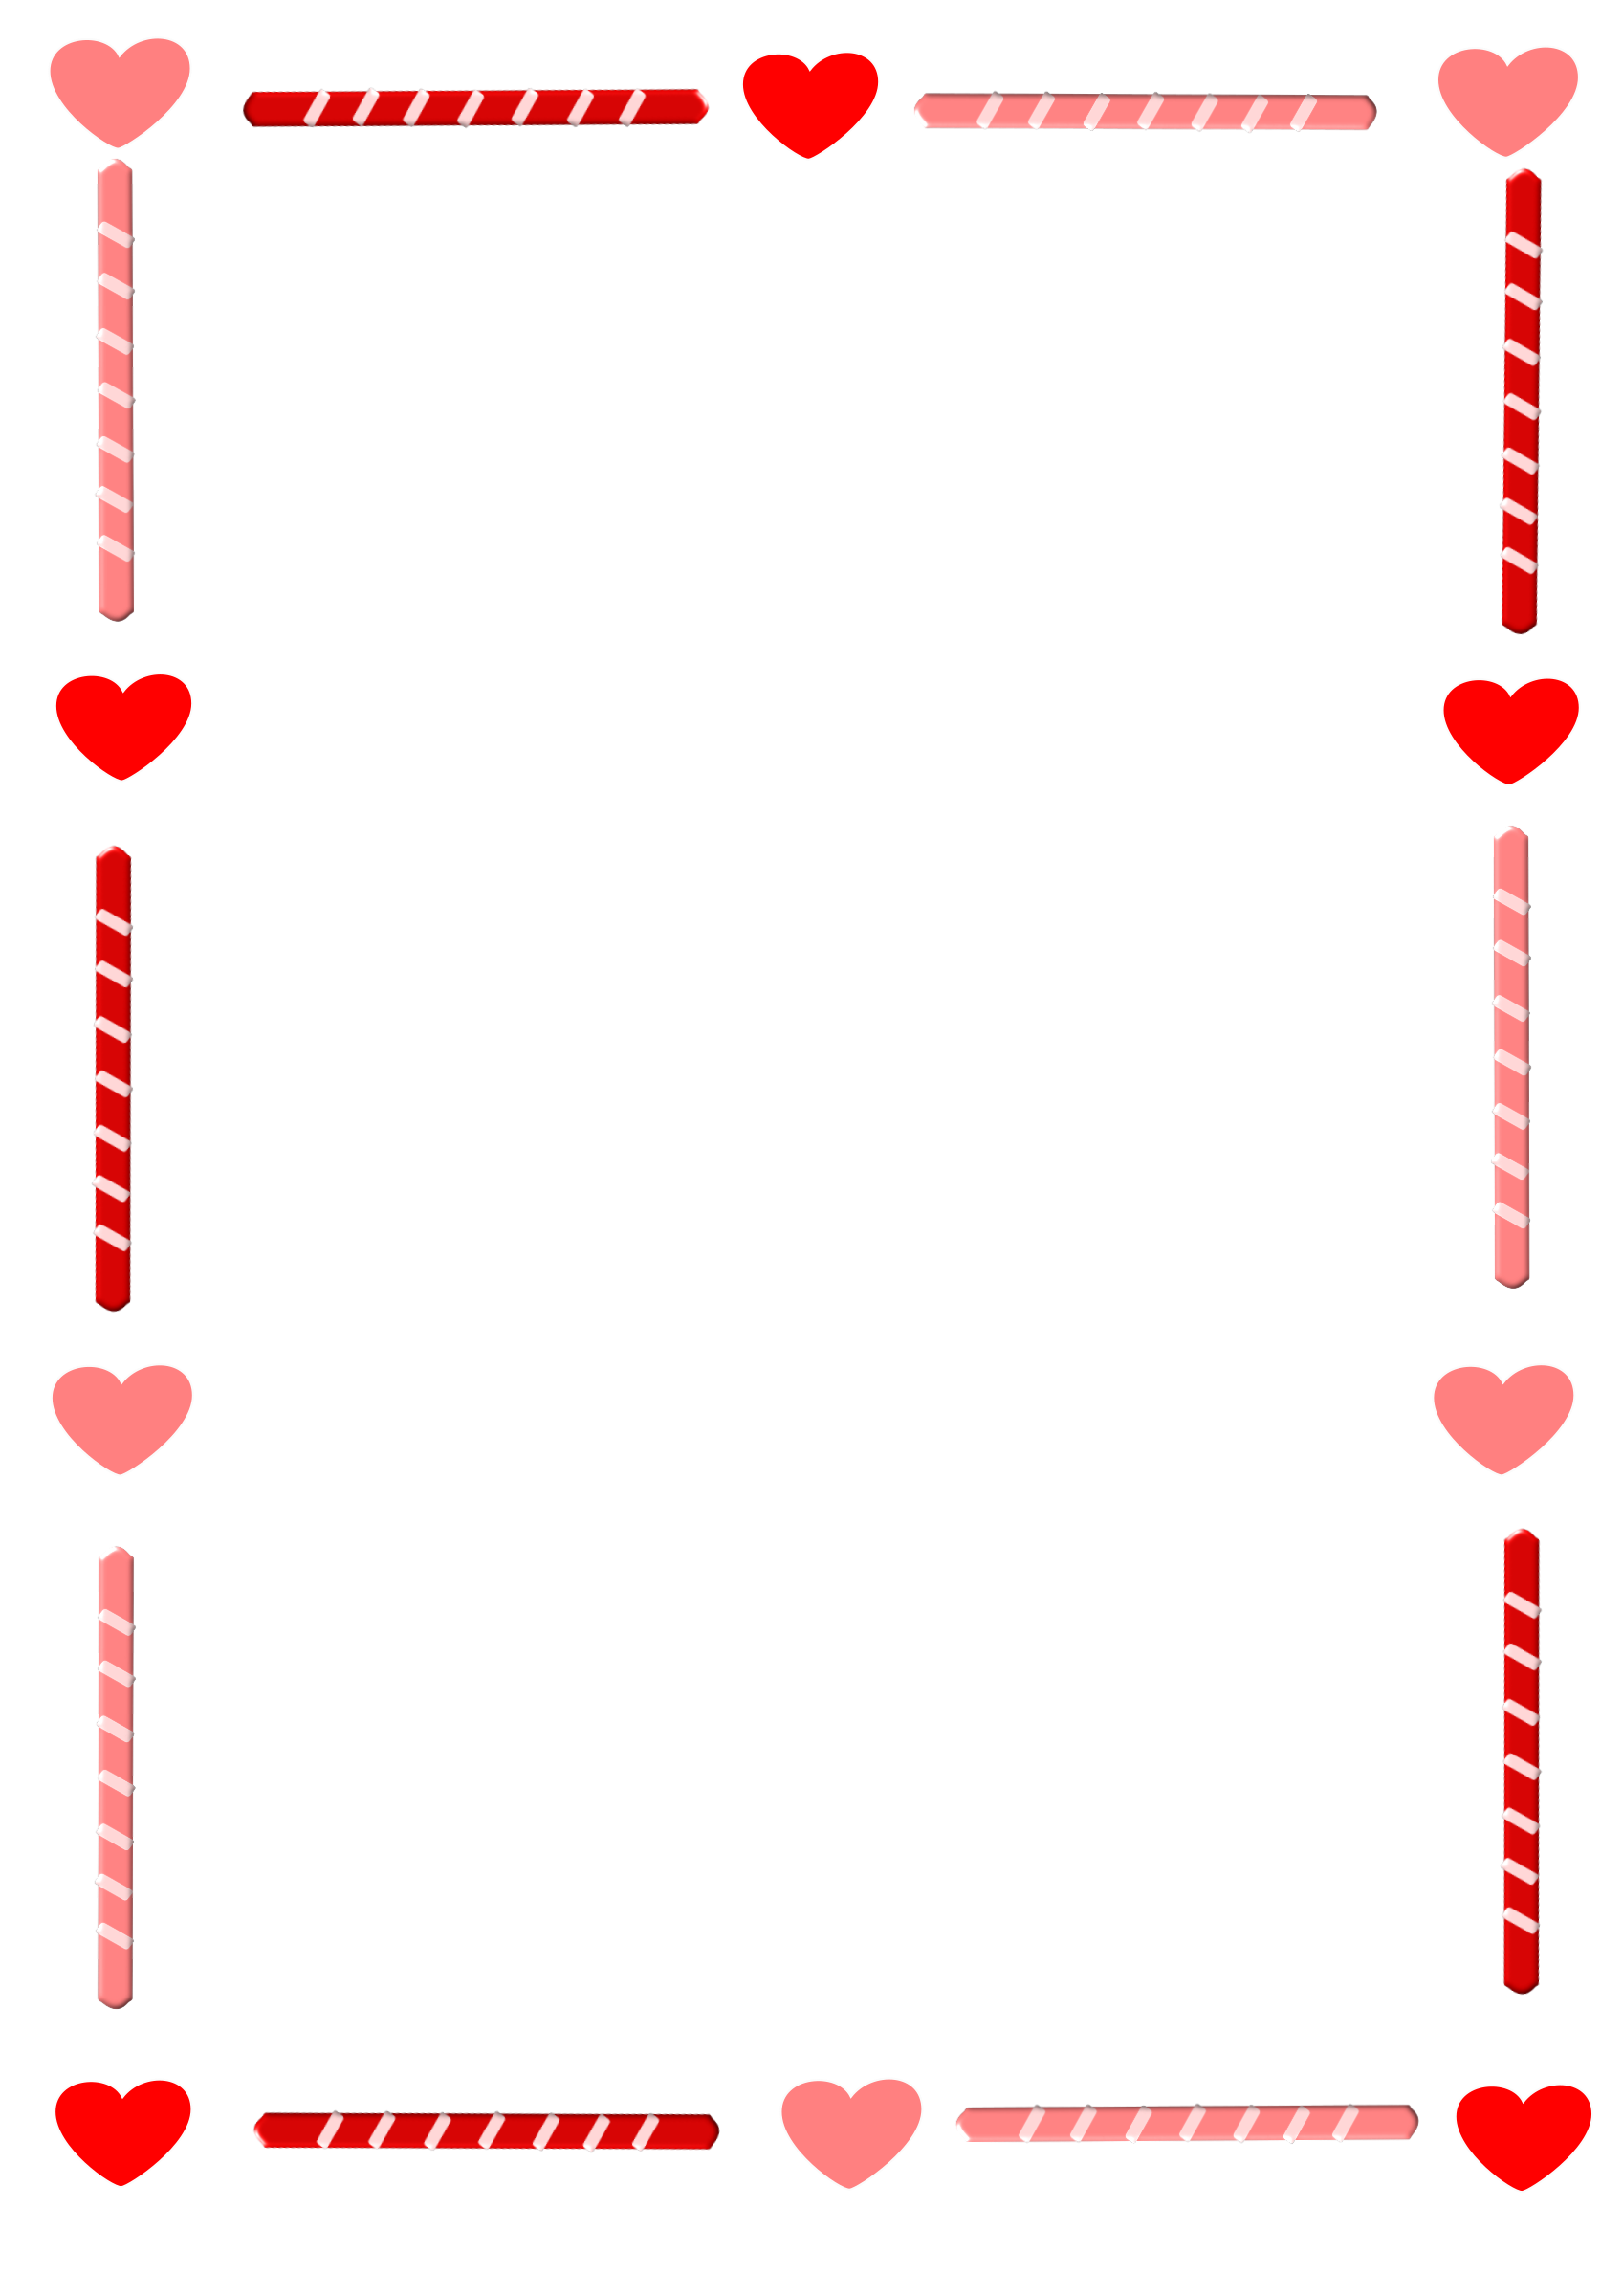 clip art freeuse download Heart and candy border. Valentine borders clipart